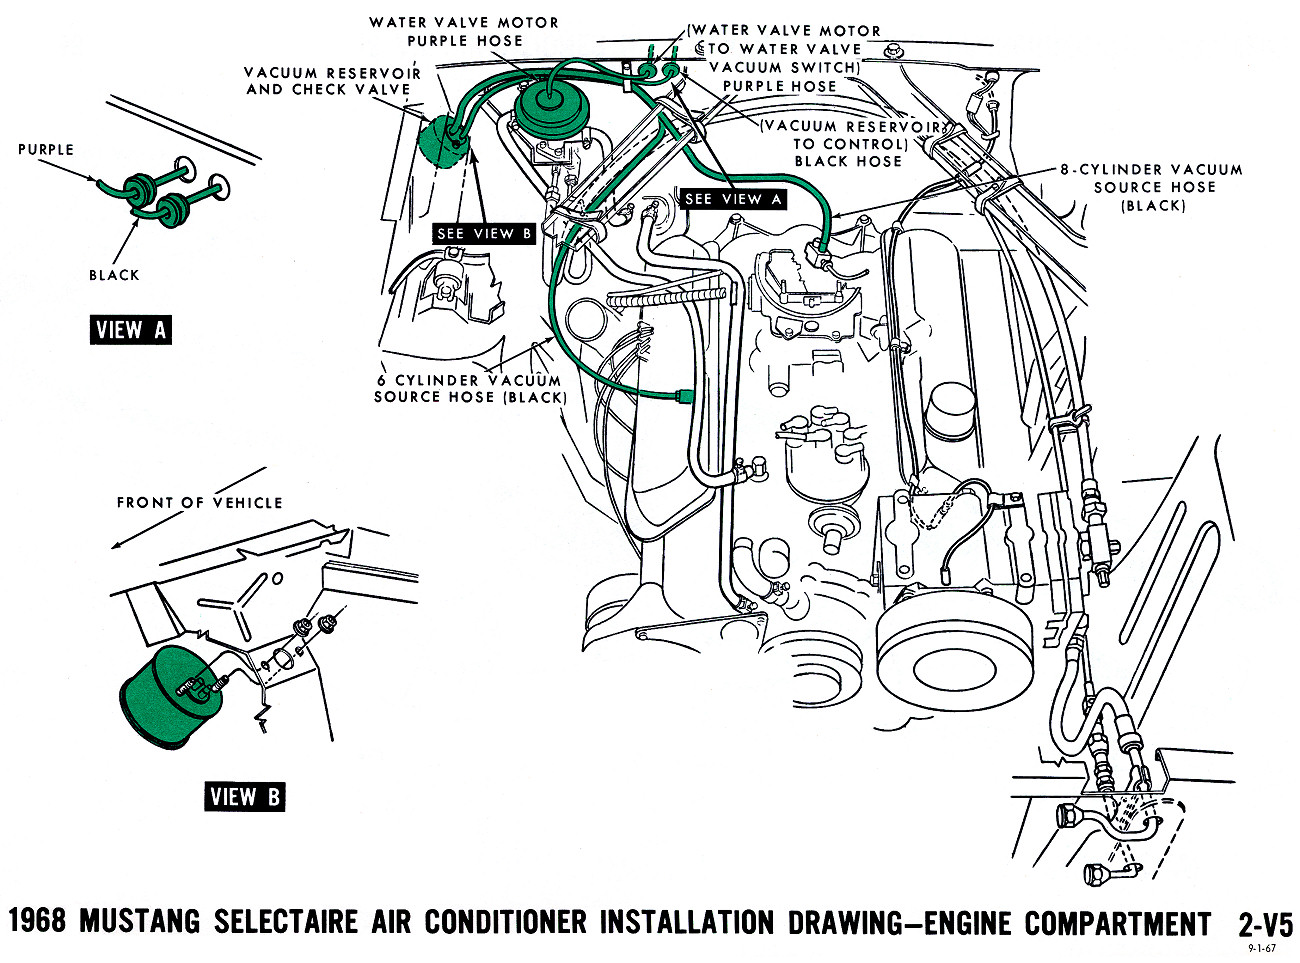 hight resolution of 68 mustang vacuum diagram wiring diagram technic ford mustang vacuum line diagram in addition 1966 ford mustang